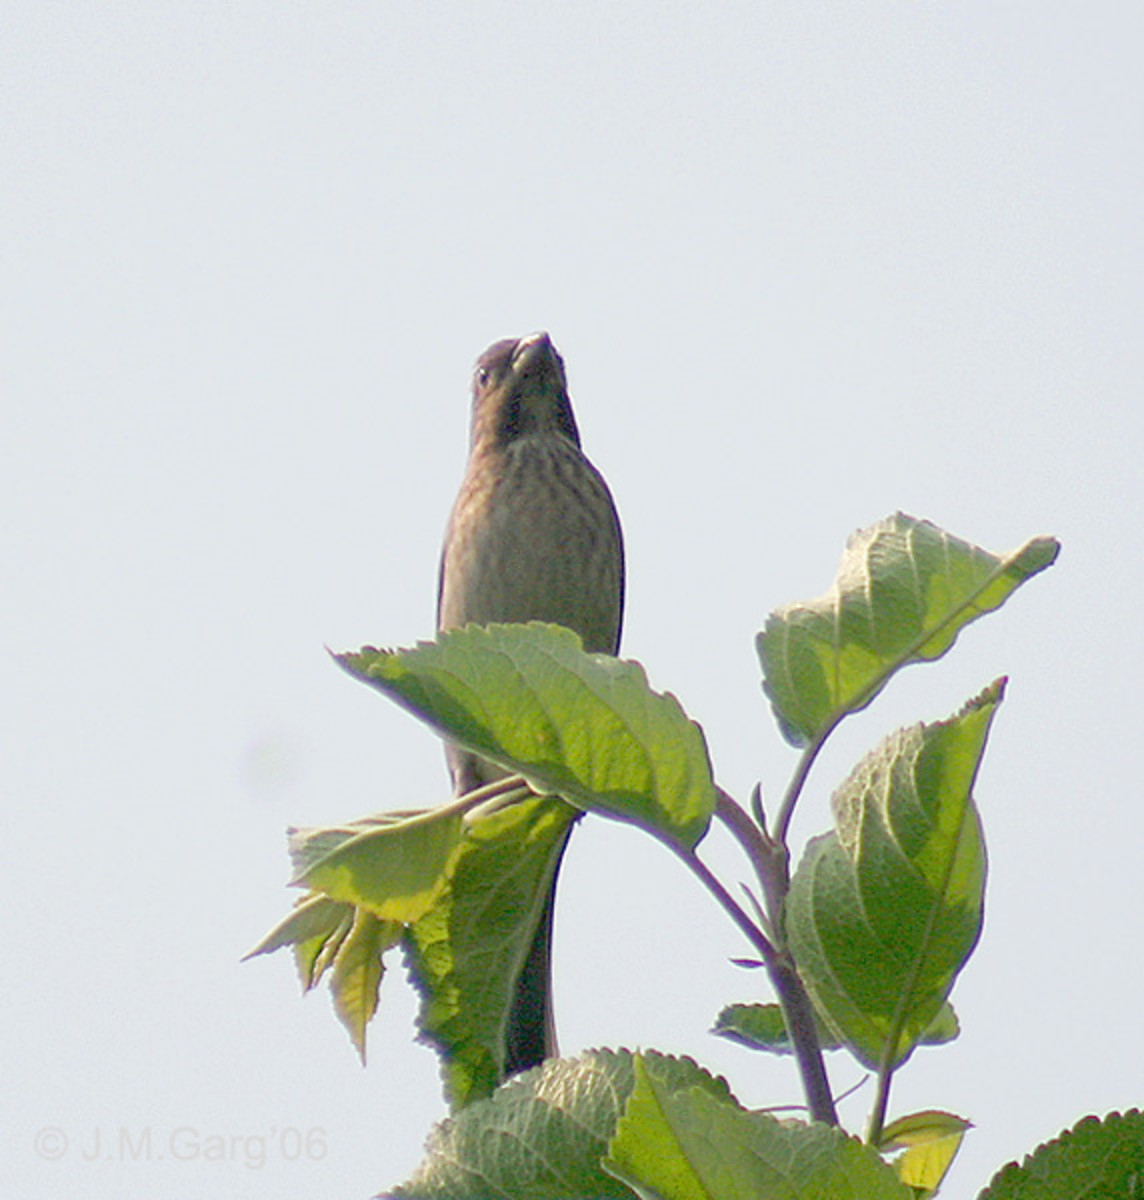 Common Rosefinch (Carpodacus erythrinus) in Kullu